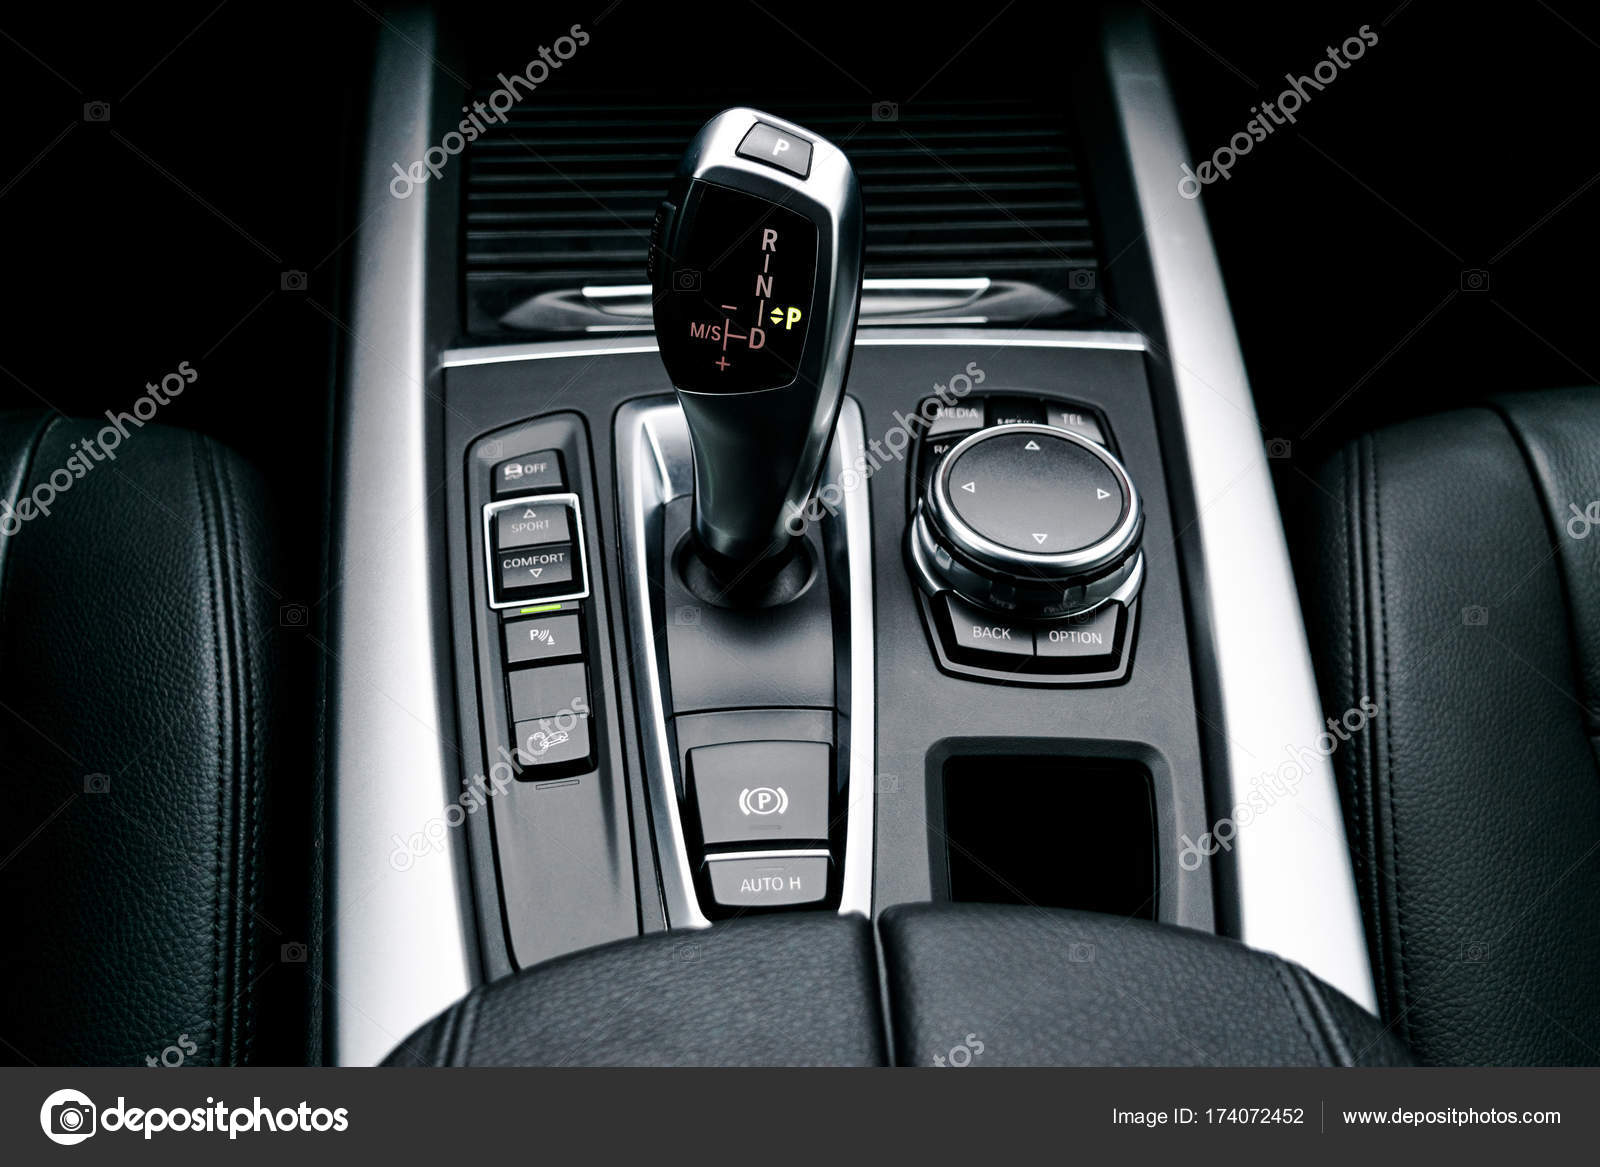 Automatic gear stick (transmission) of a modern car, multimedia and